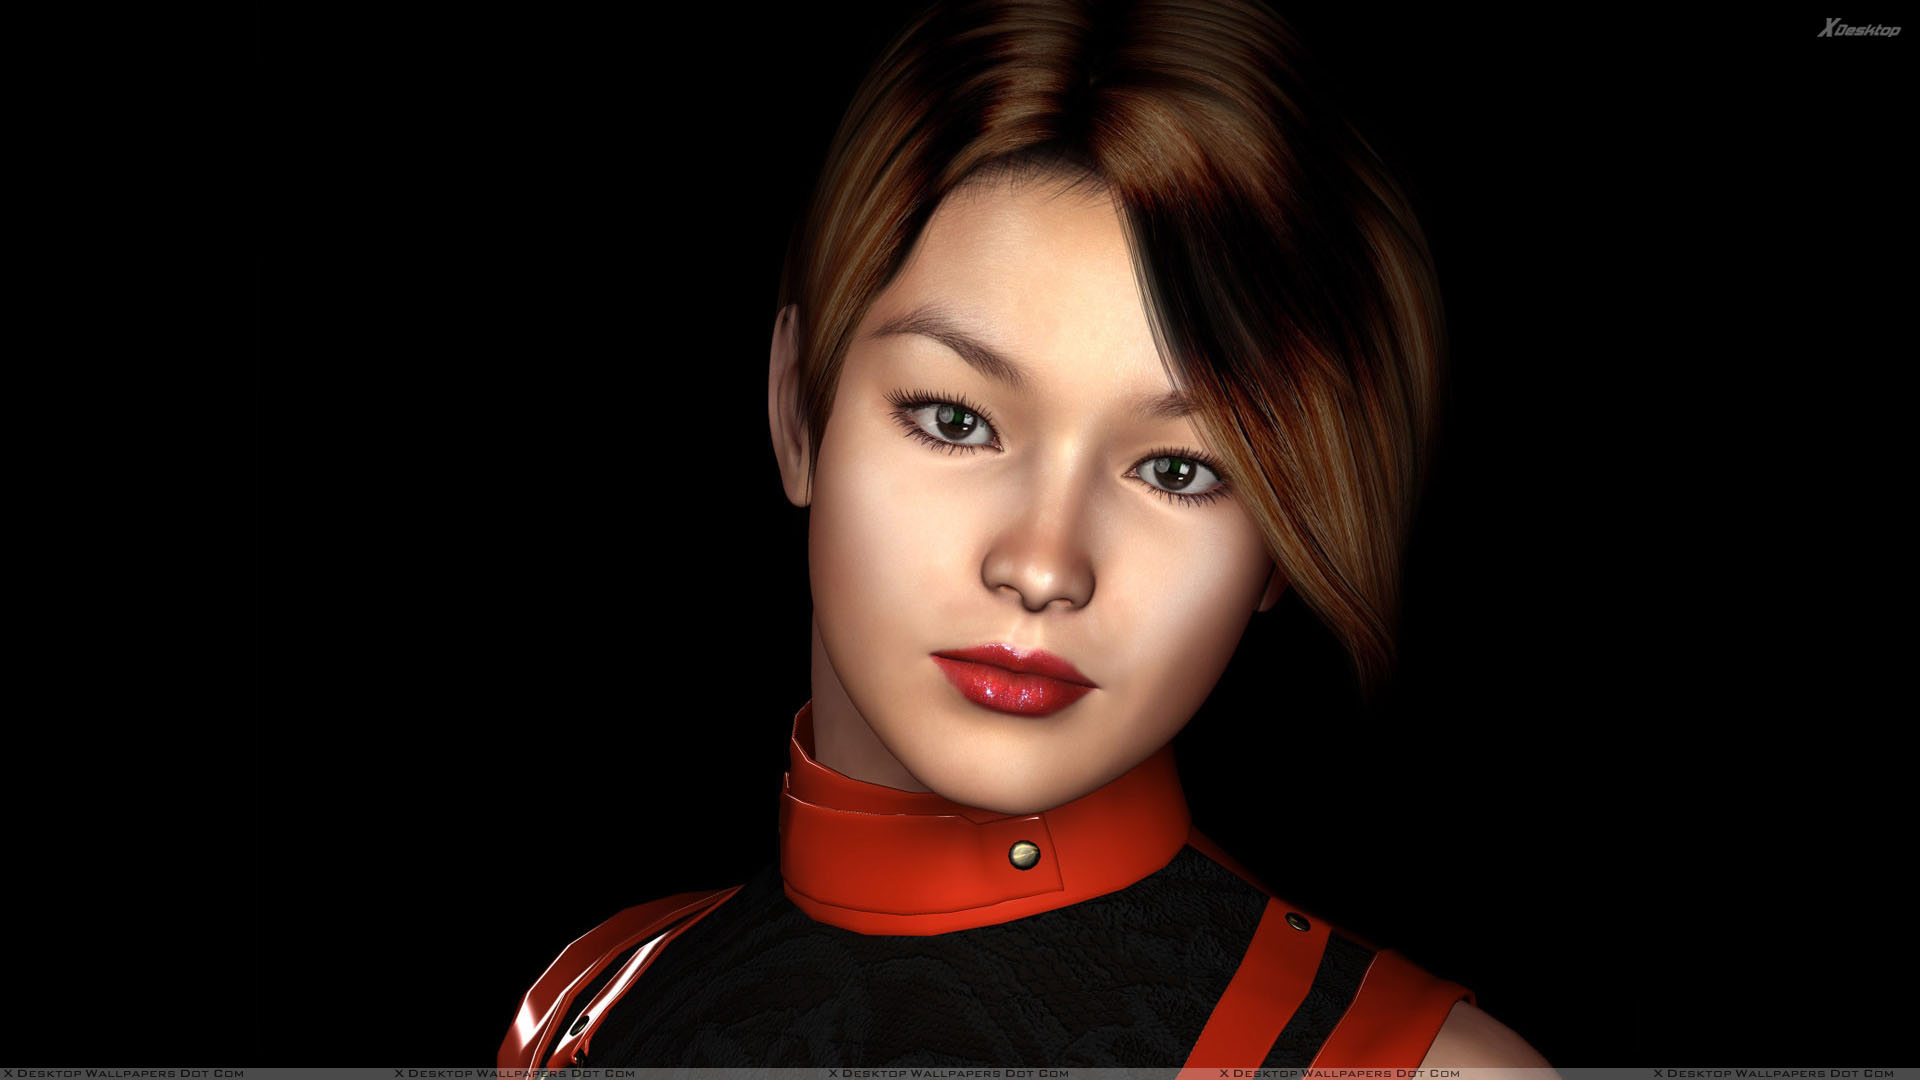 3d girl red lips and cute face closeup n black background wallpaper